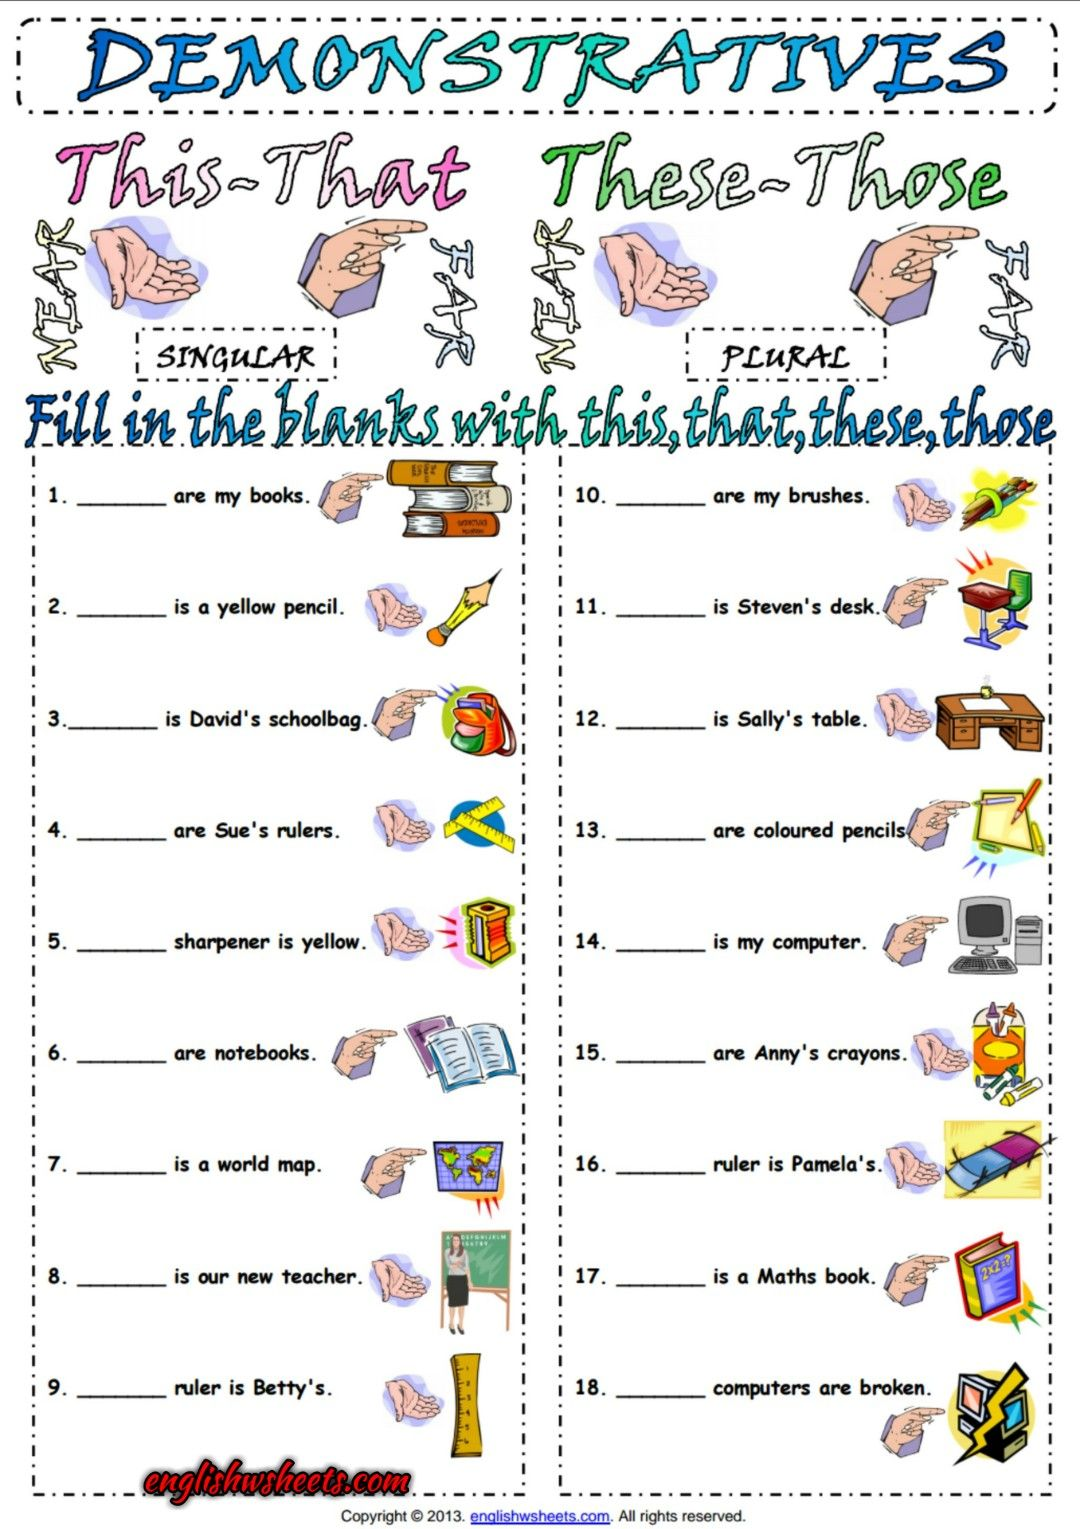 Demonstrative Pronouns ESL Exercise Worksheet | Esl ...